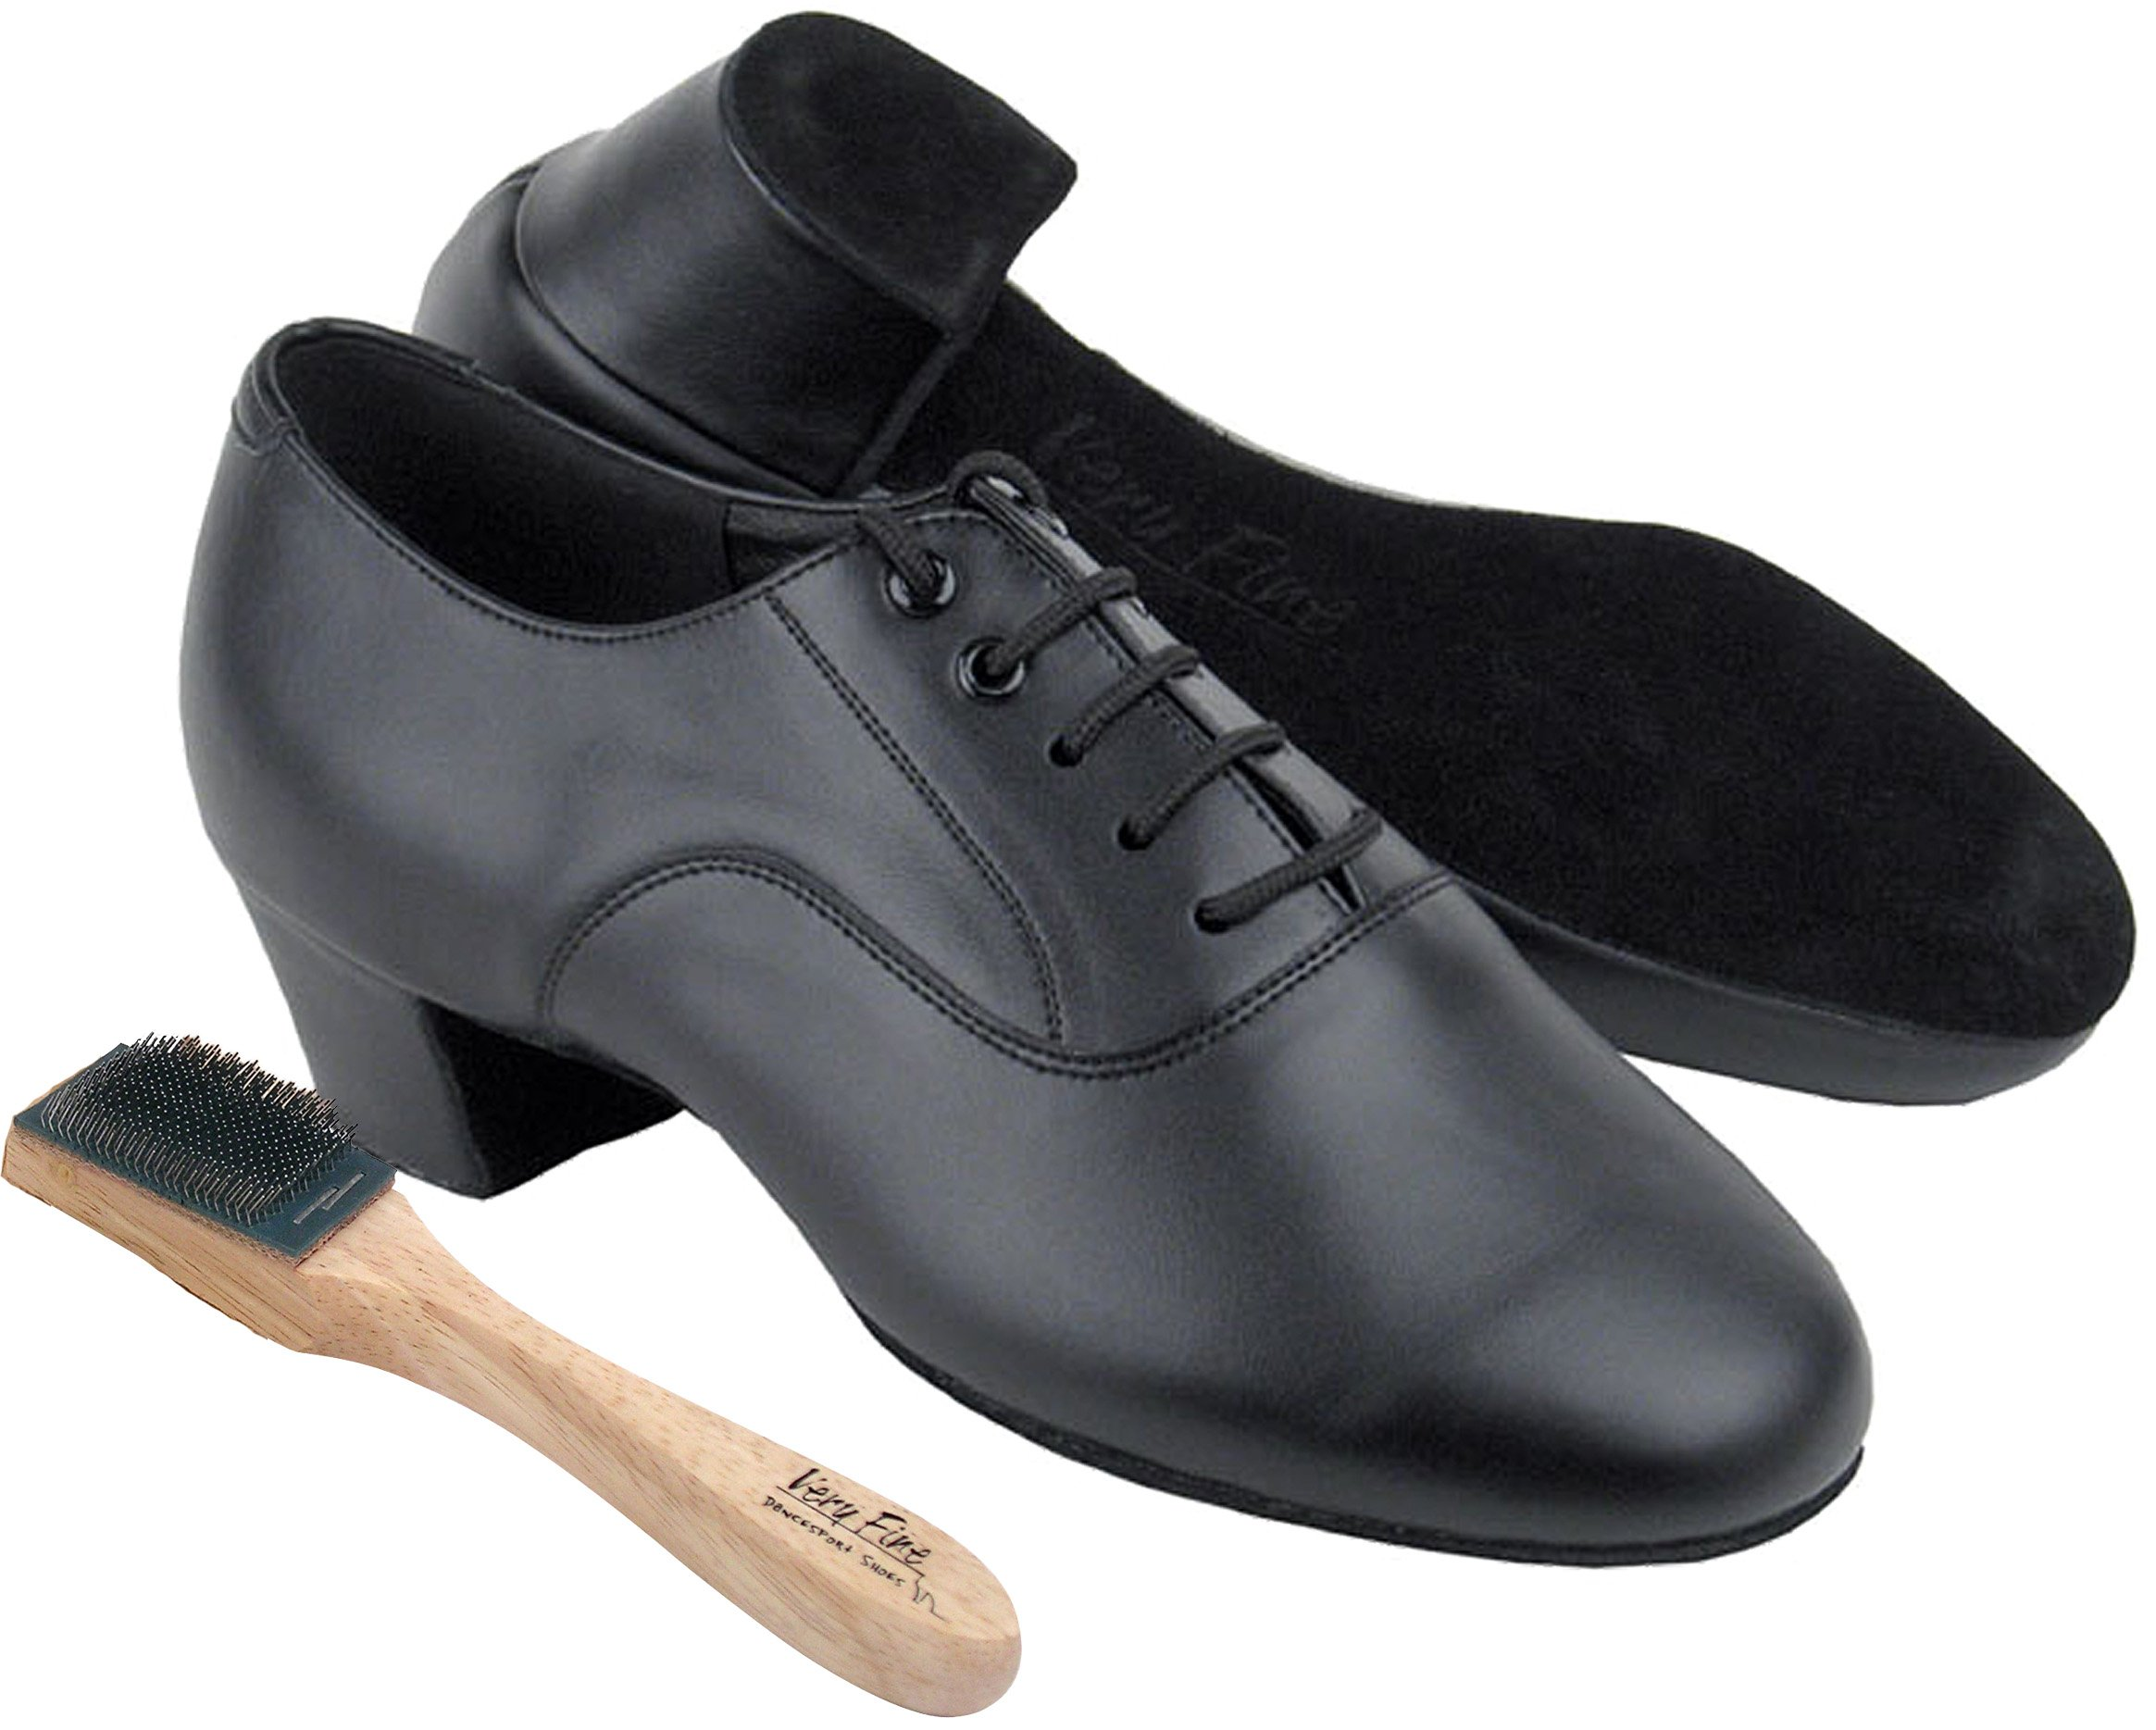 Very Fine Men's Salsa Ballroom Tango Latin Dance Shoes Style C915108 Bundle with Dance Shoe Wire Brush, Black Leather 13 M US Heel 1.5 Inch